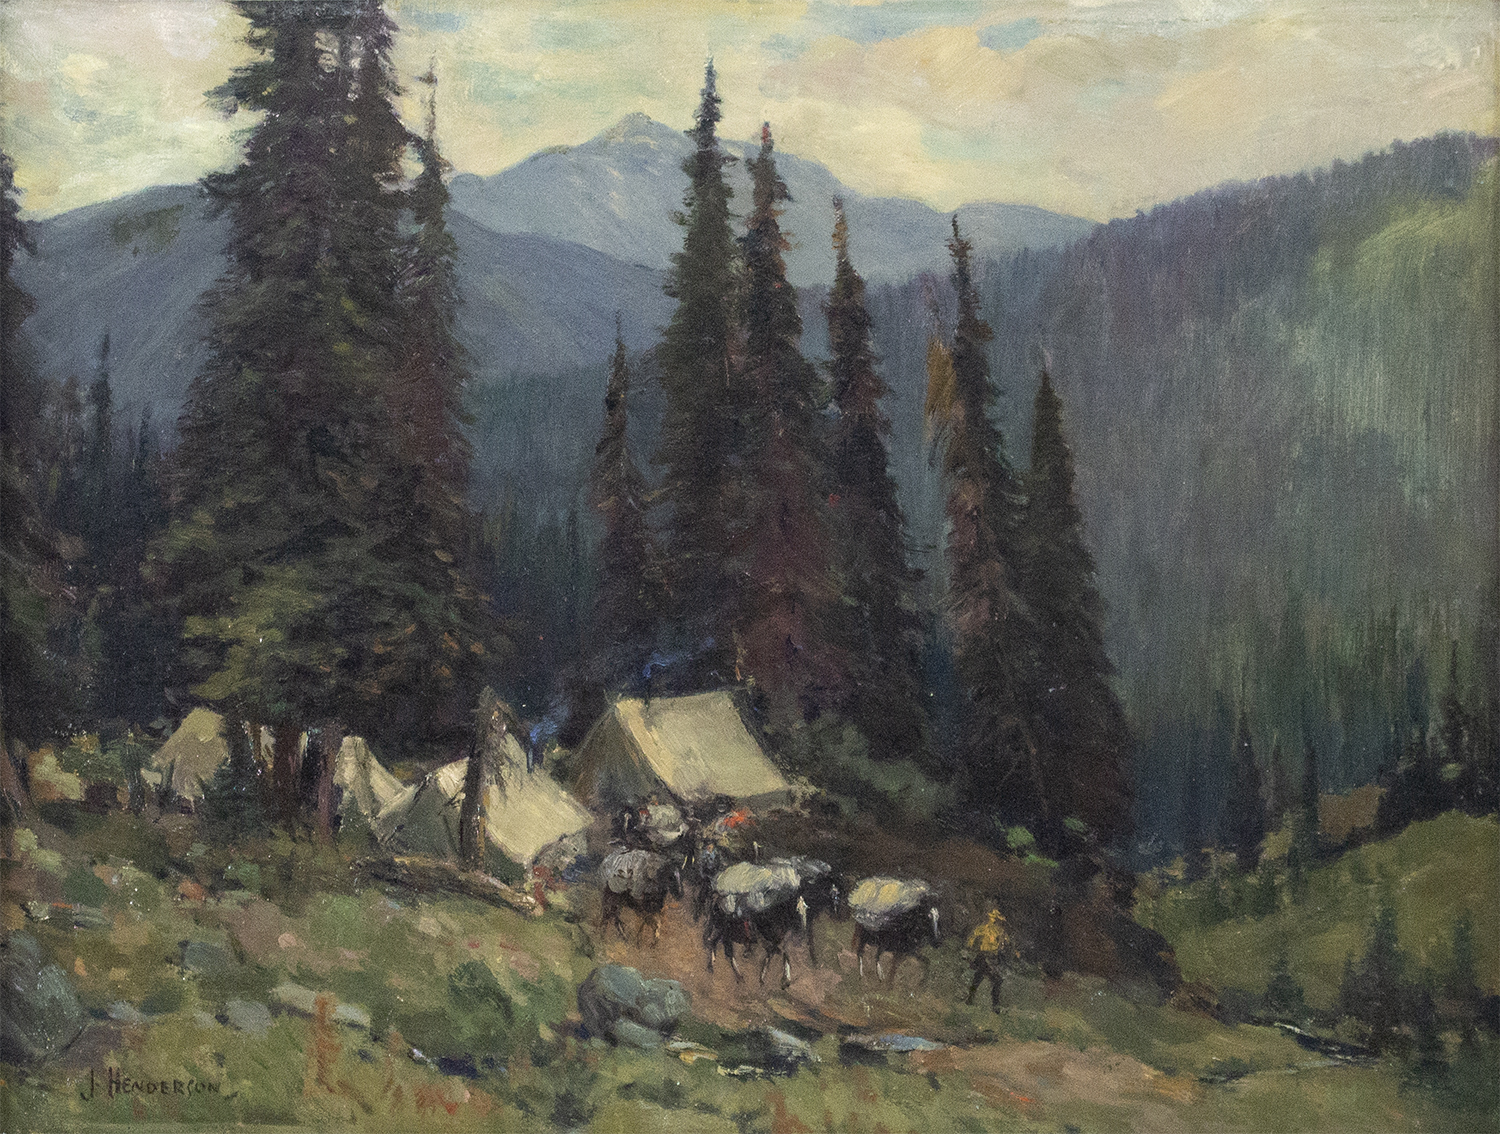 James Henderson (Canadian 1871-1951) Rocky Mountain Encampment